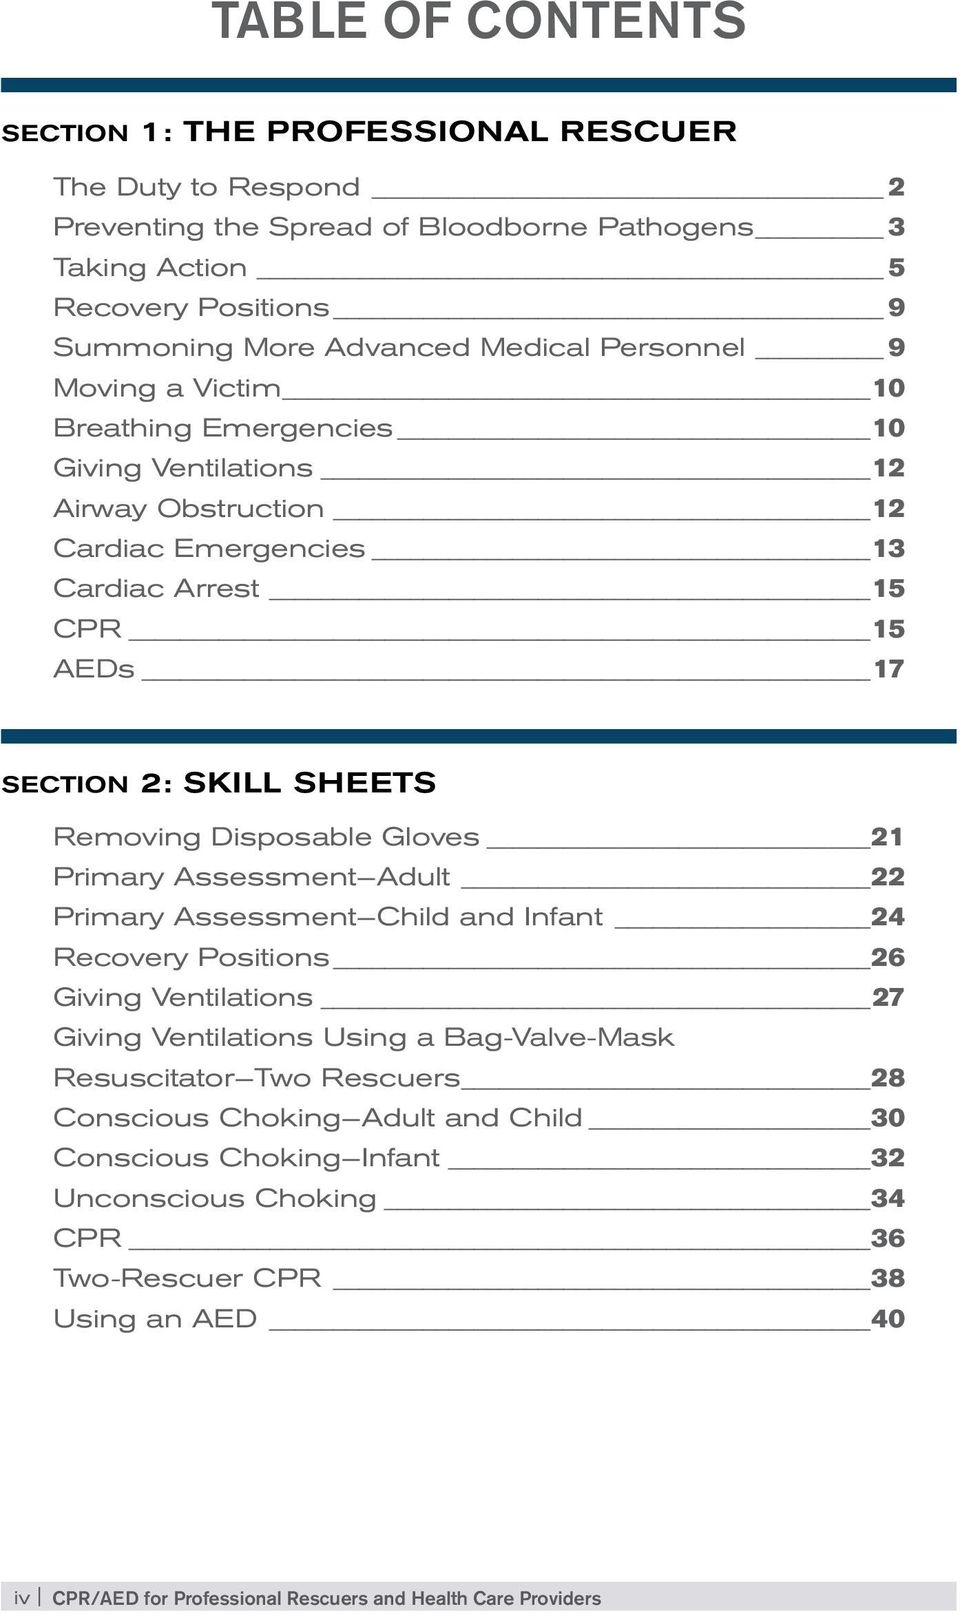 Disposable Gloves 21 Primary Assessment Adult 22 Primary Assessment Child and Infant 24 Recovery Positions 26 Giving Ventilations 27 Giving Ventilations Using a Bag-Valve-Mask Resuscitator Two